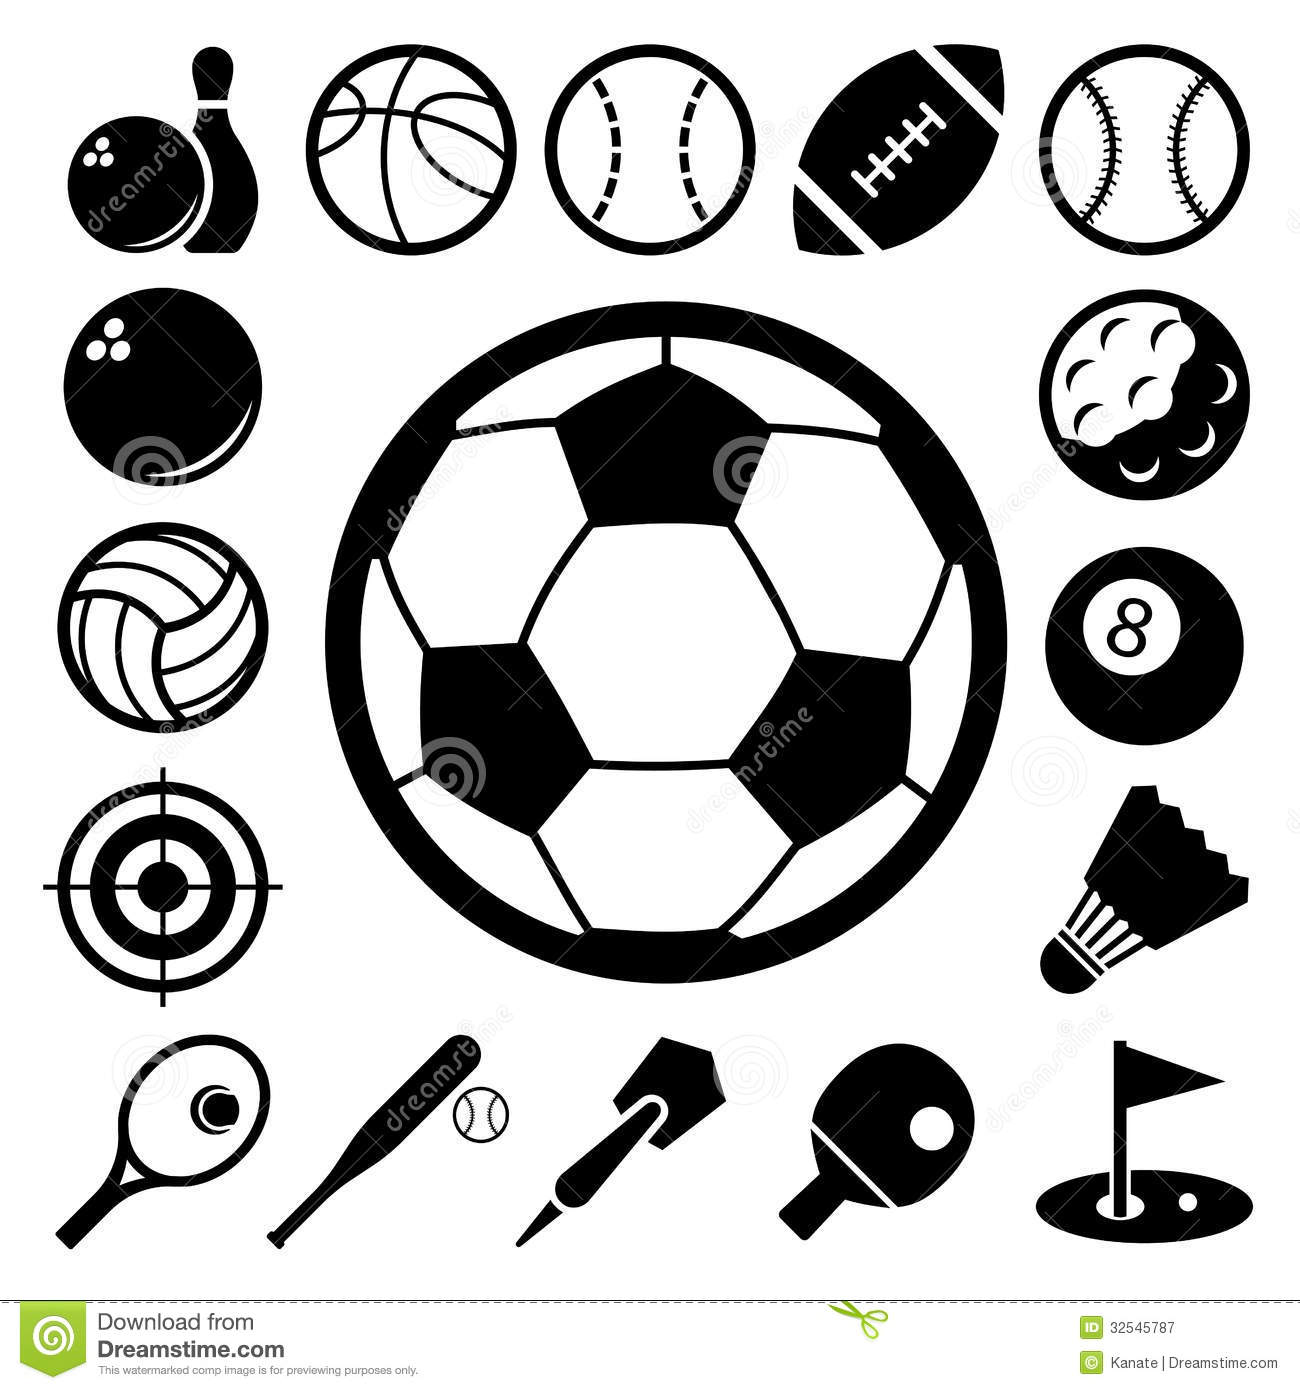 Royalty Free Stock Photography Sports Icons Set Illustration Eps Image32545787 on baseball vector graphics